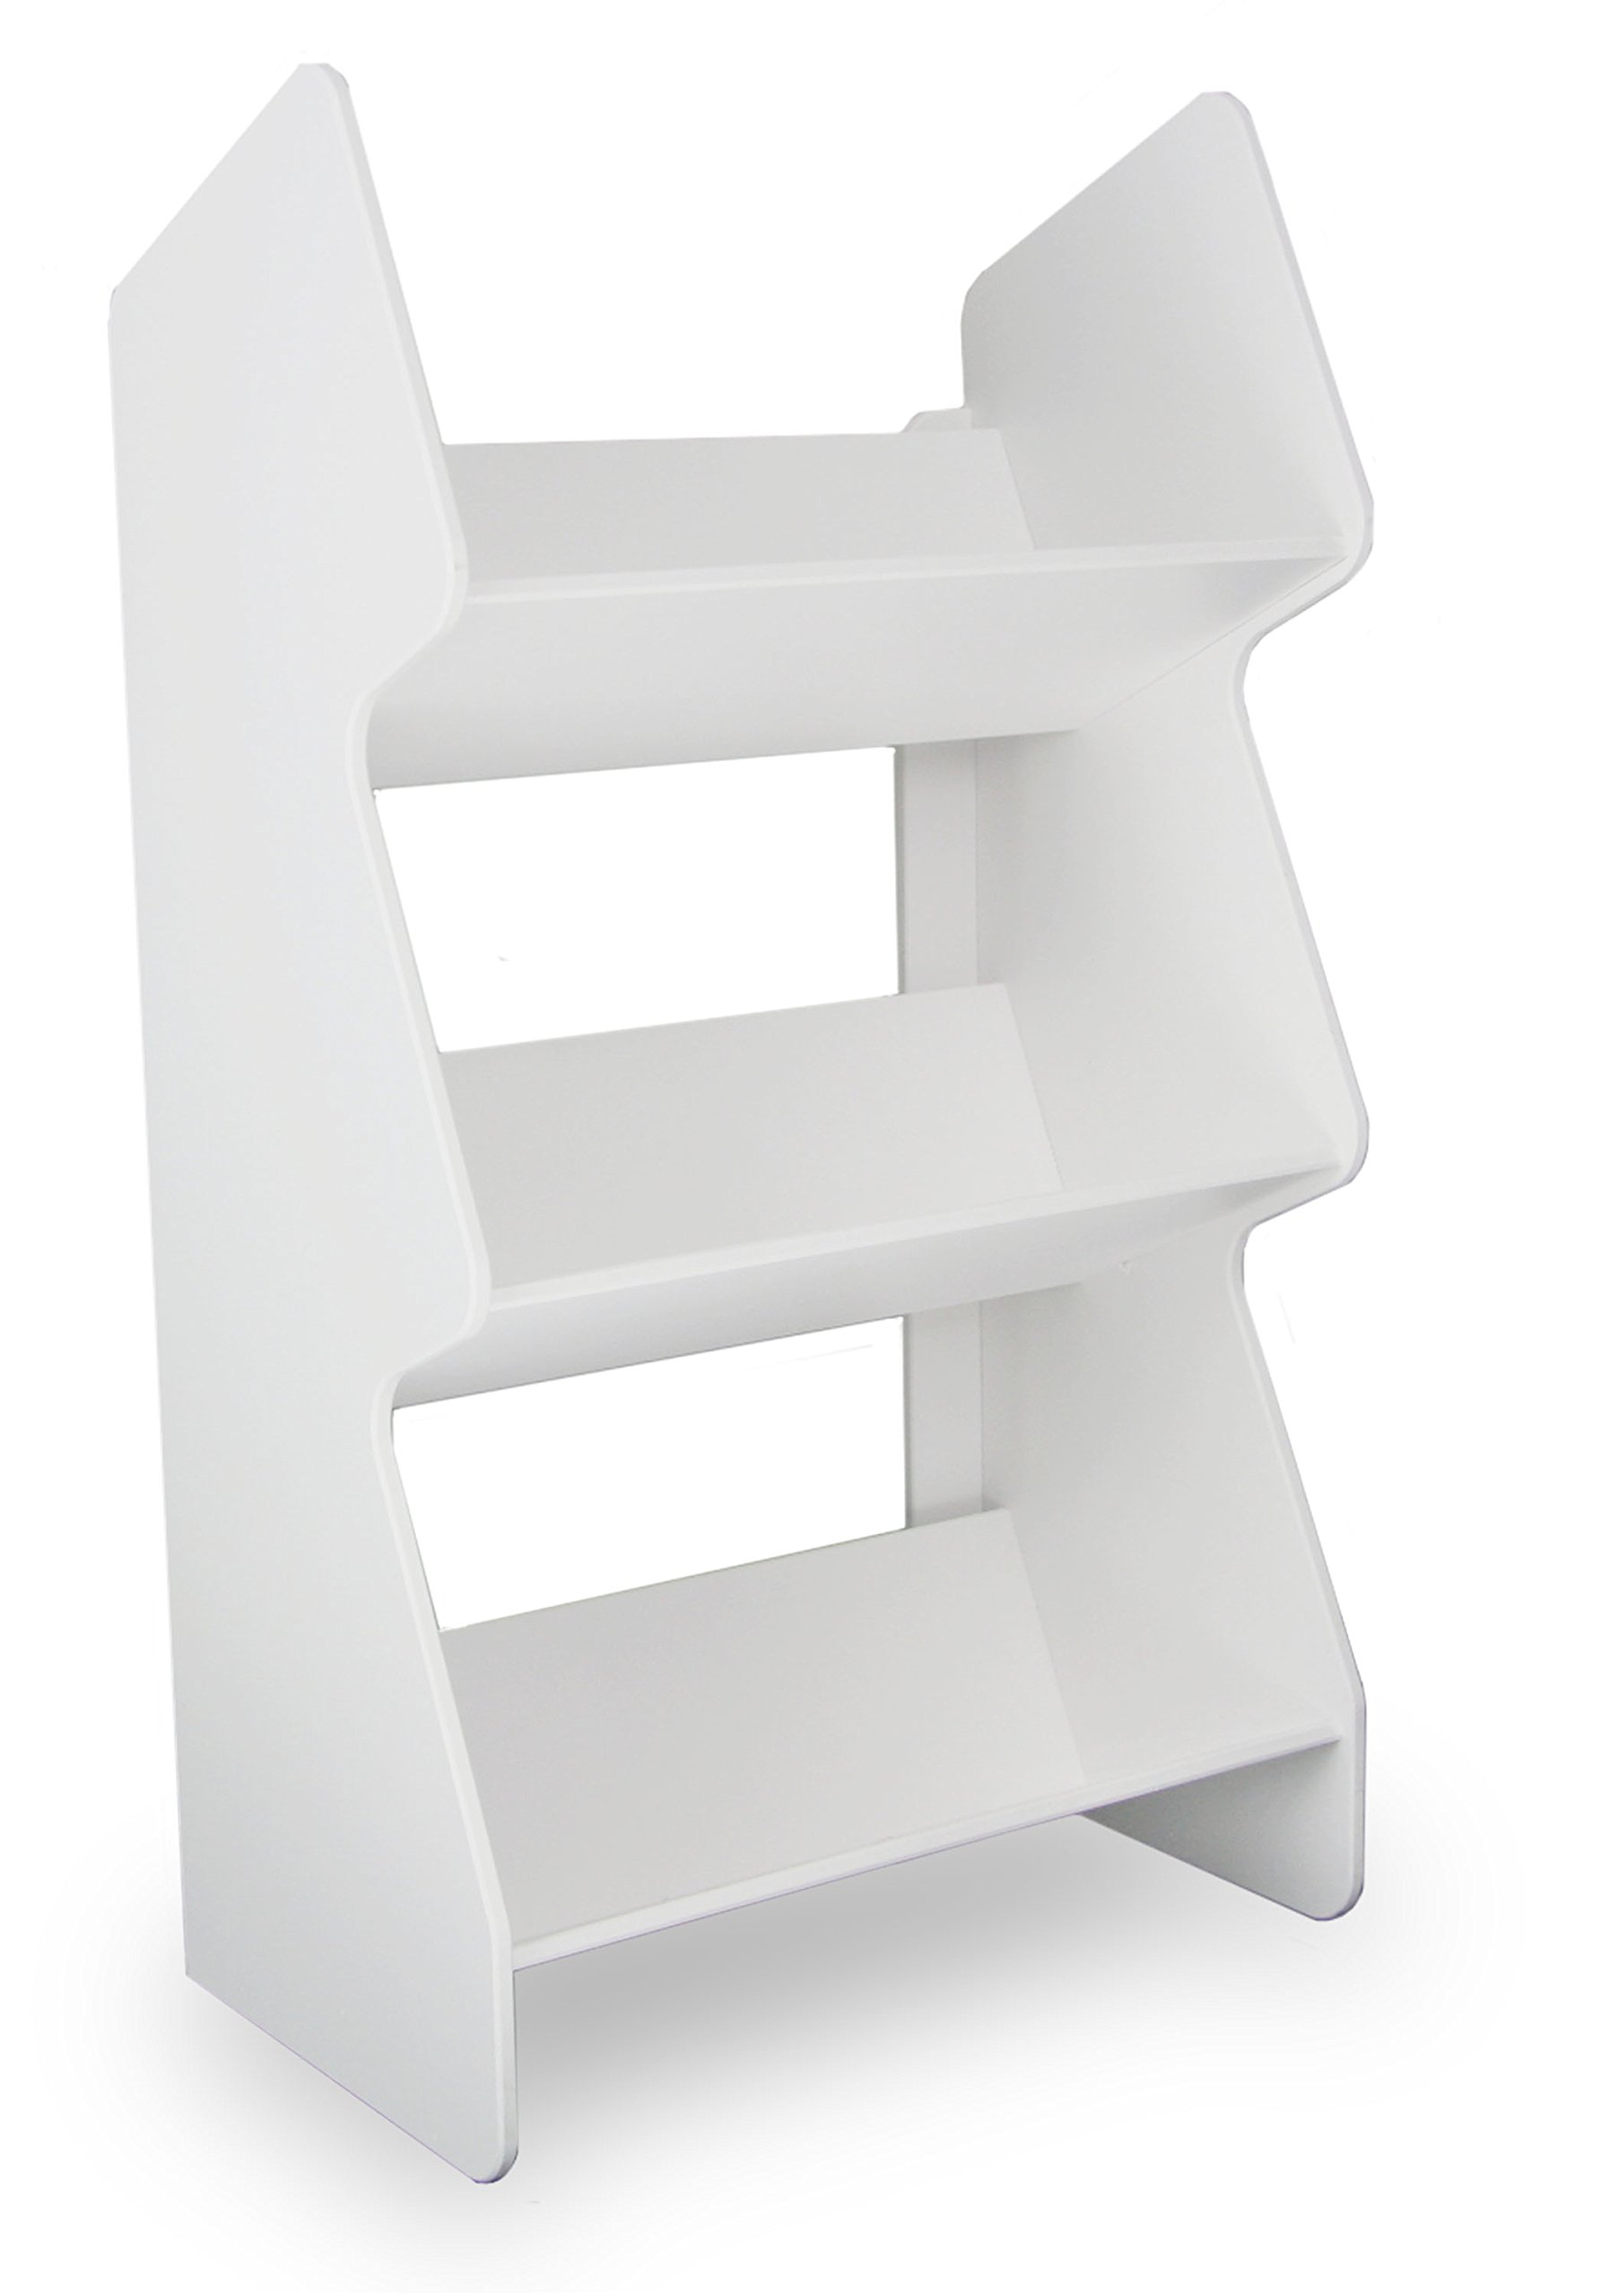 TrippNT 51828 Small Suture Storage Shelf, 12'' Width x 22'' Height x 7'' Depth, White by TrippNT